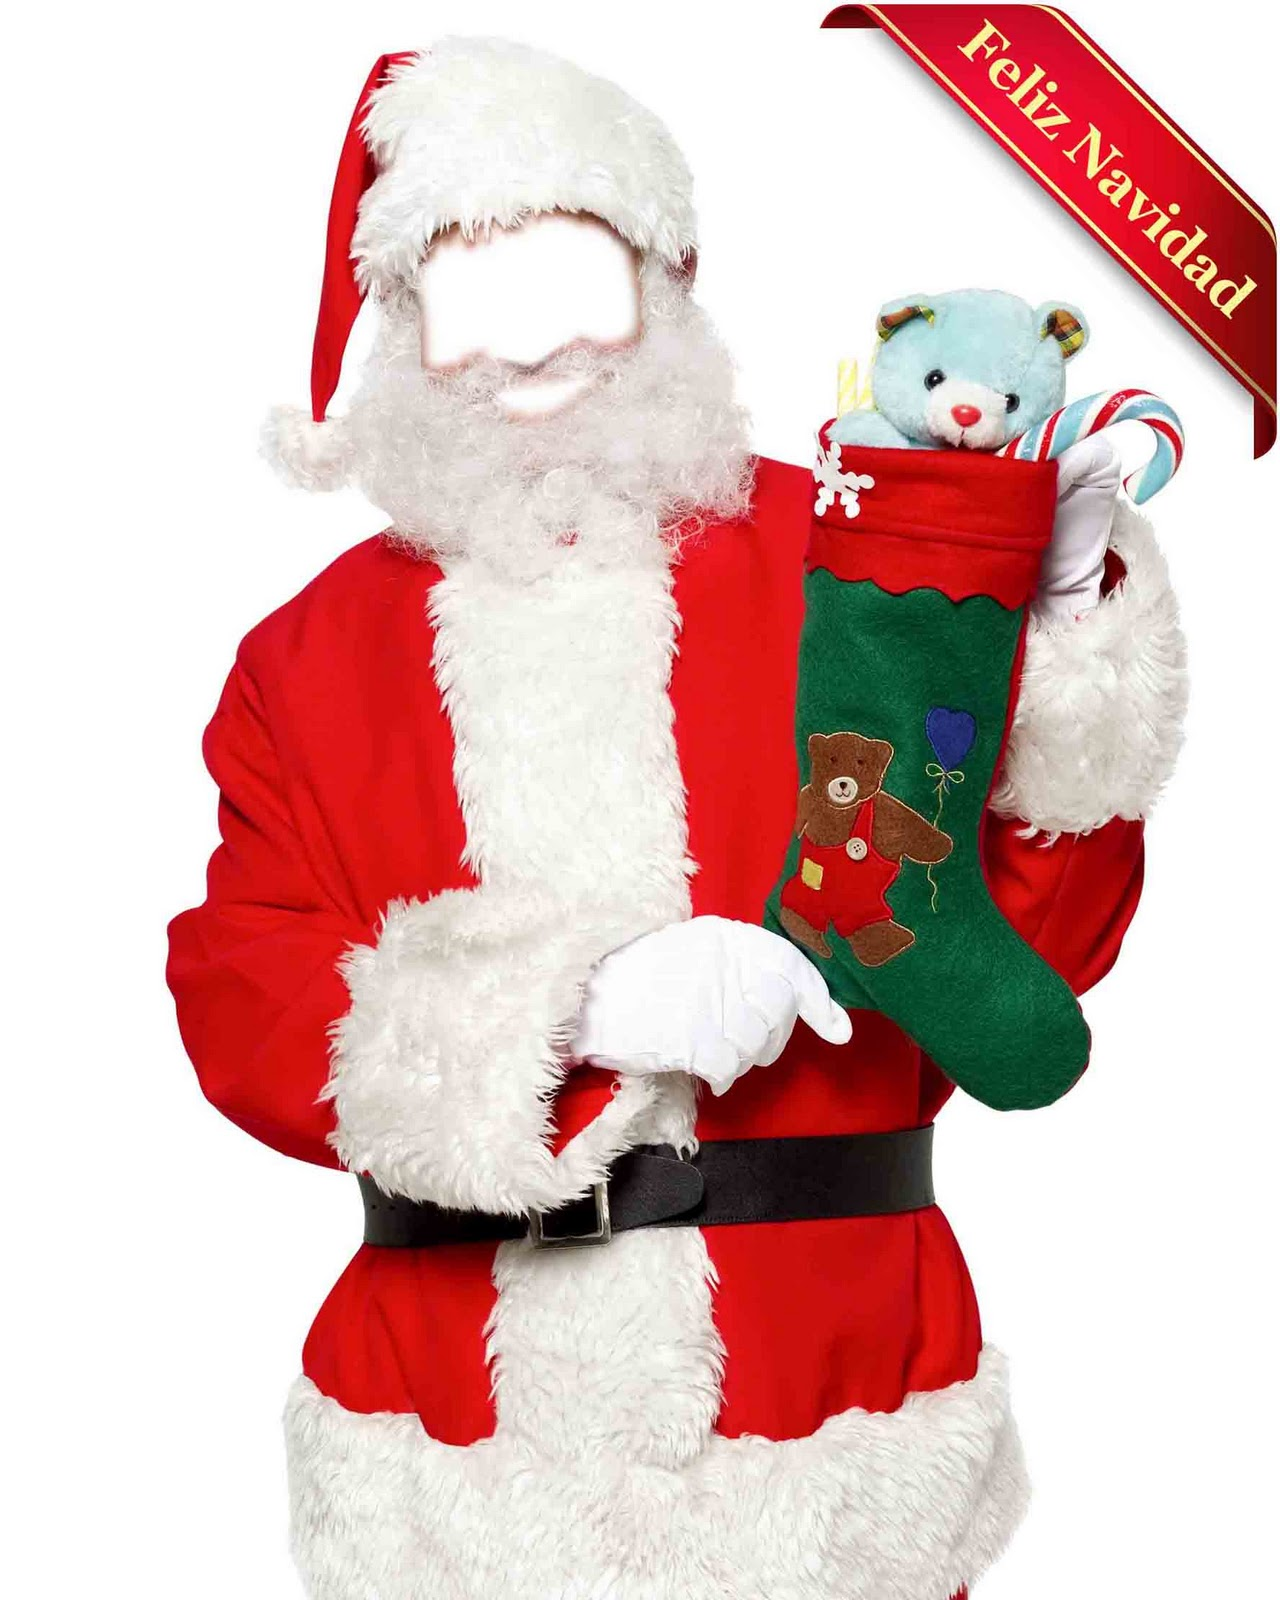 Santa Claus Pictures Free Clipart image #34014